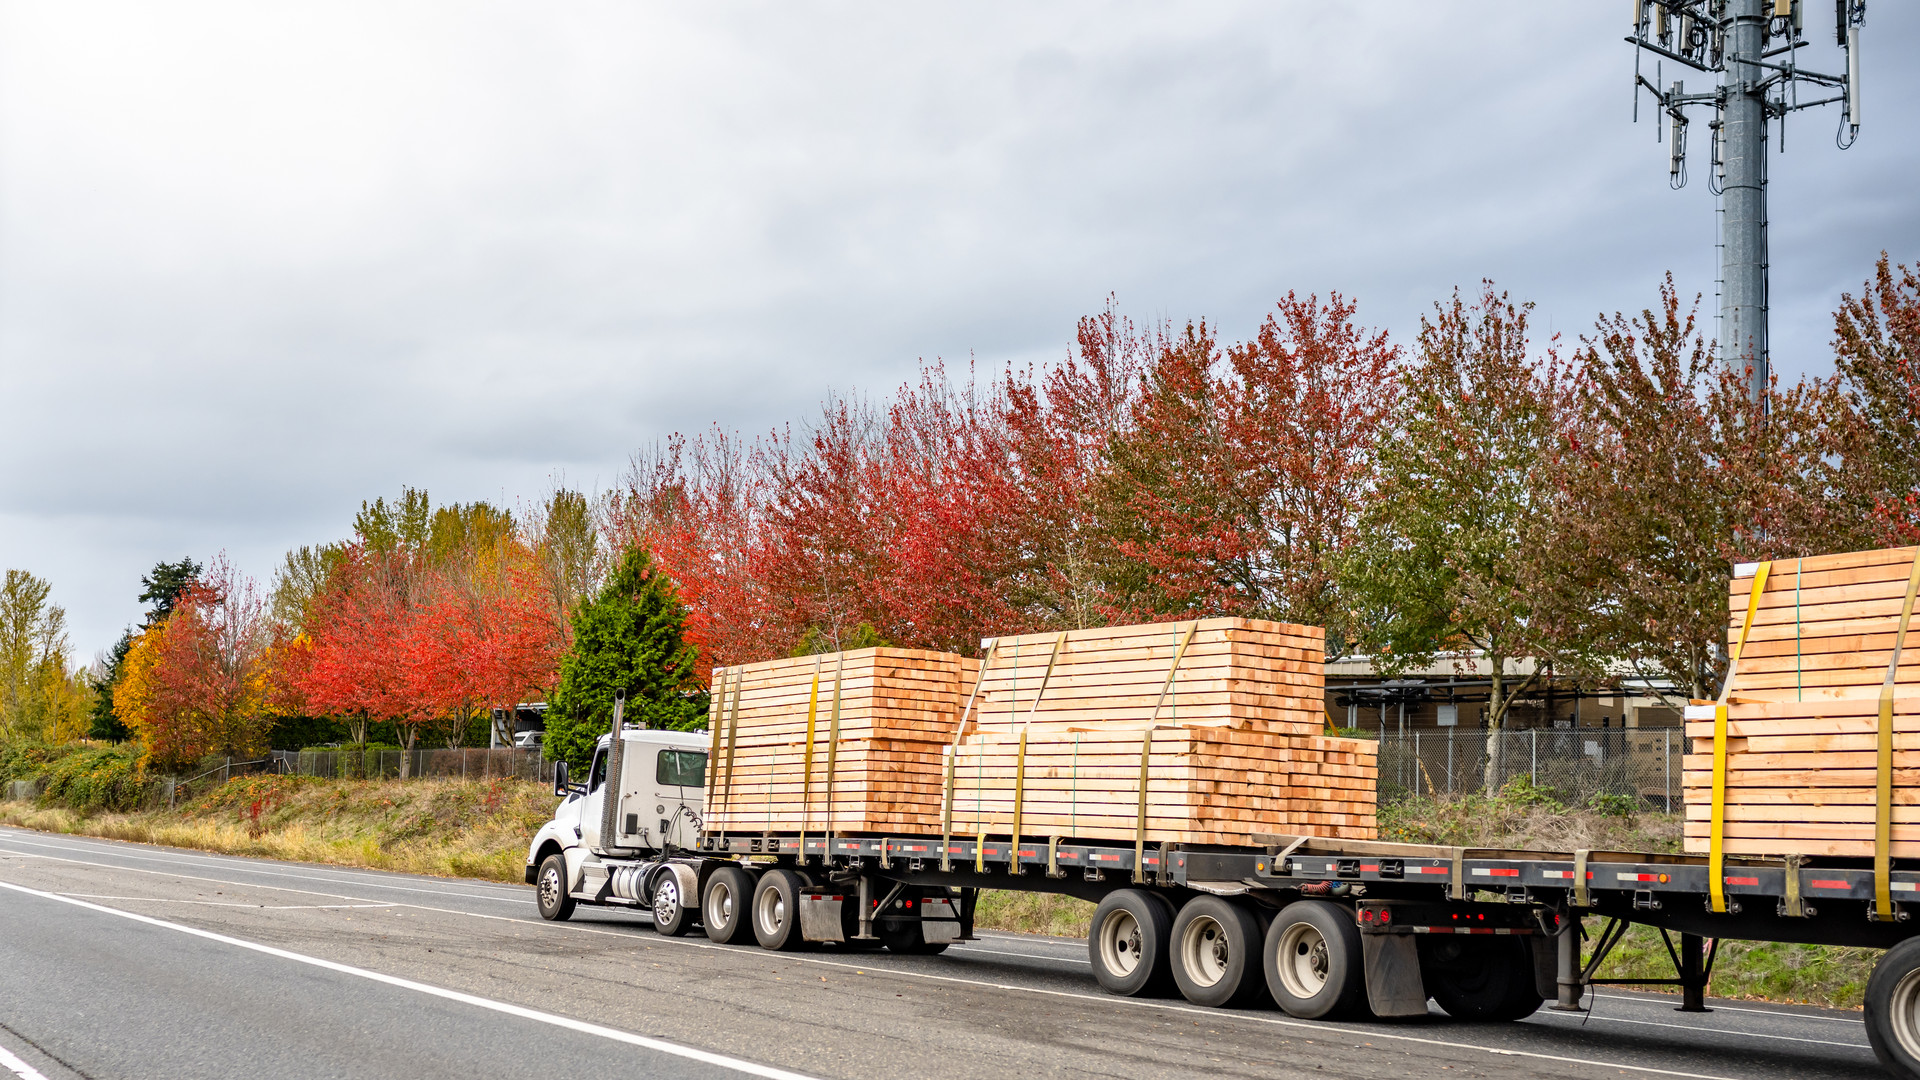 Powerful white big rig semi truck with day cab transporting lumber wood on two flat bed semi trailers running on the straight road with autumn trees